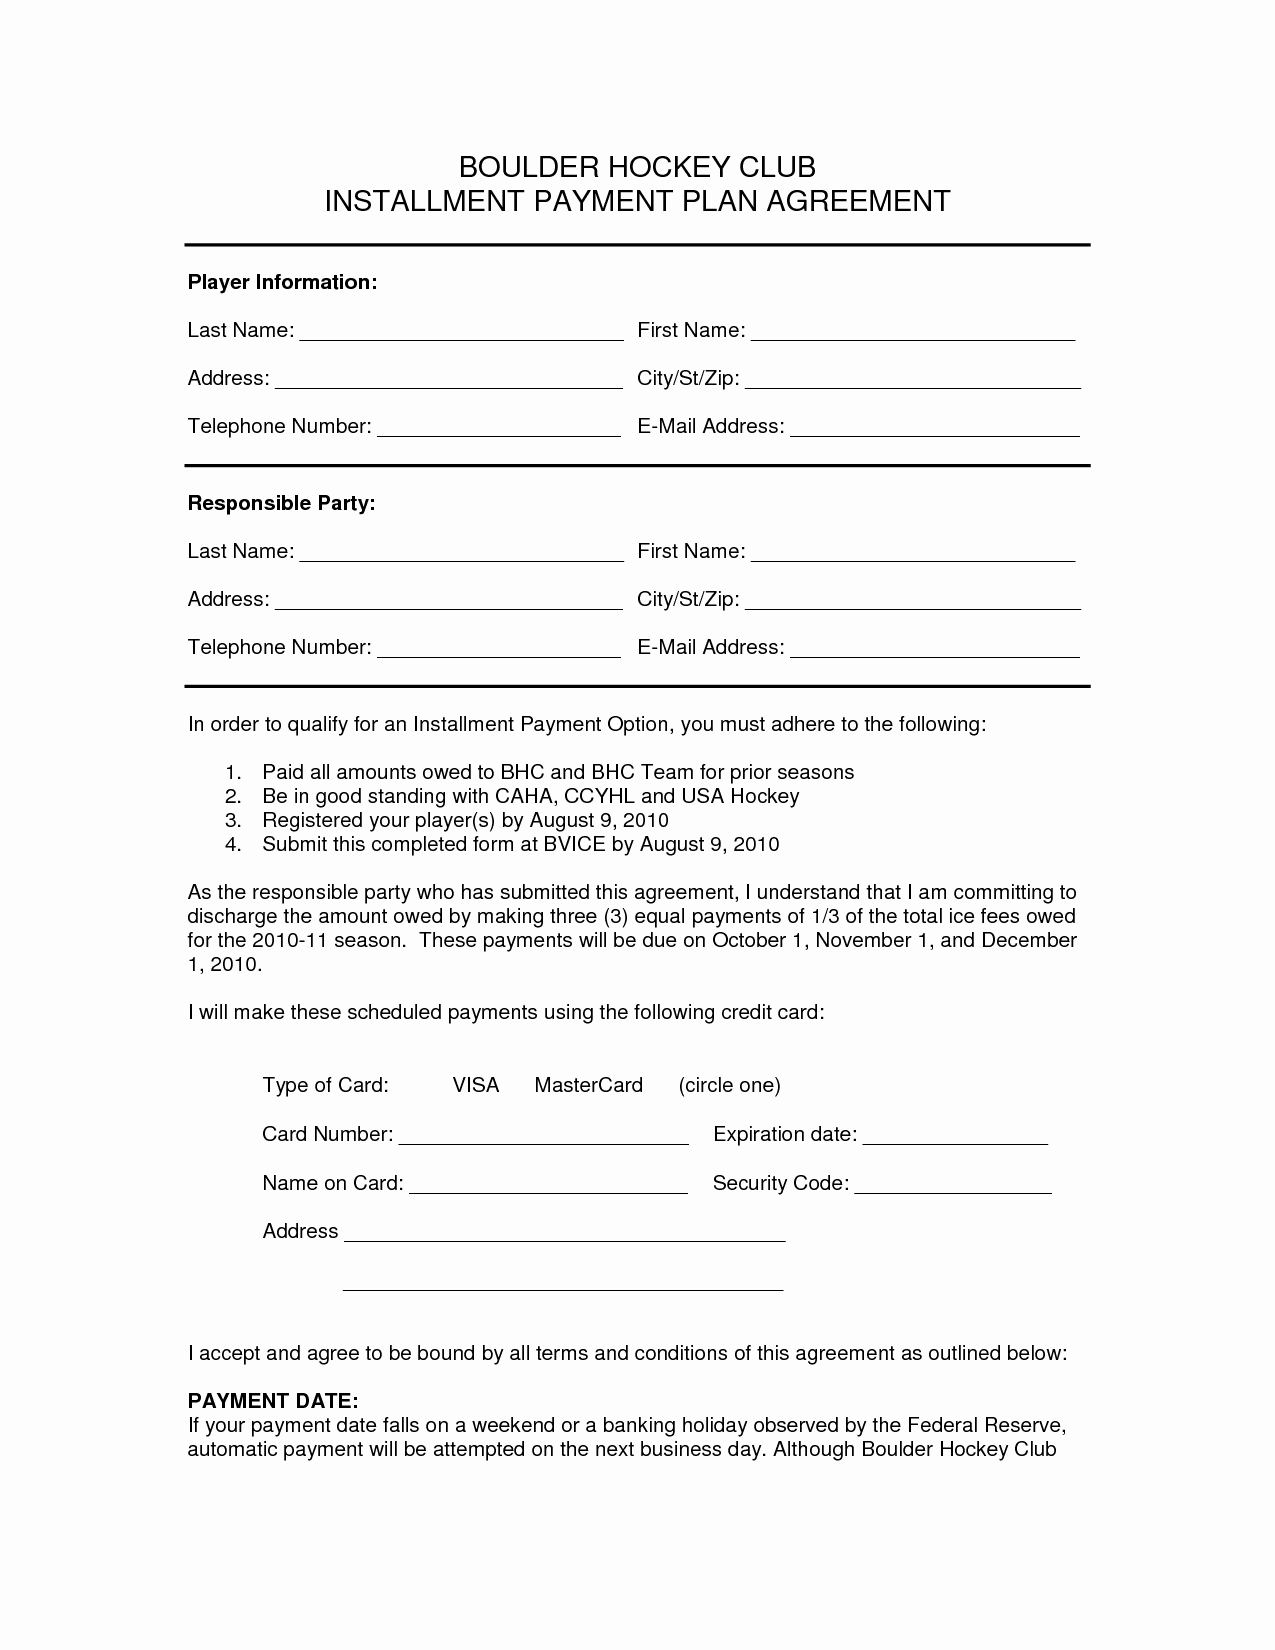 Installment Payment Contract Template Elegant 10 Best Of Payment Plan Agreement form Editable